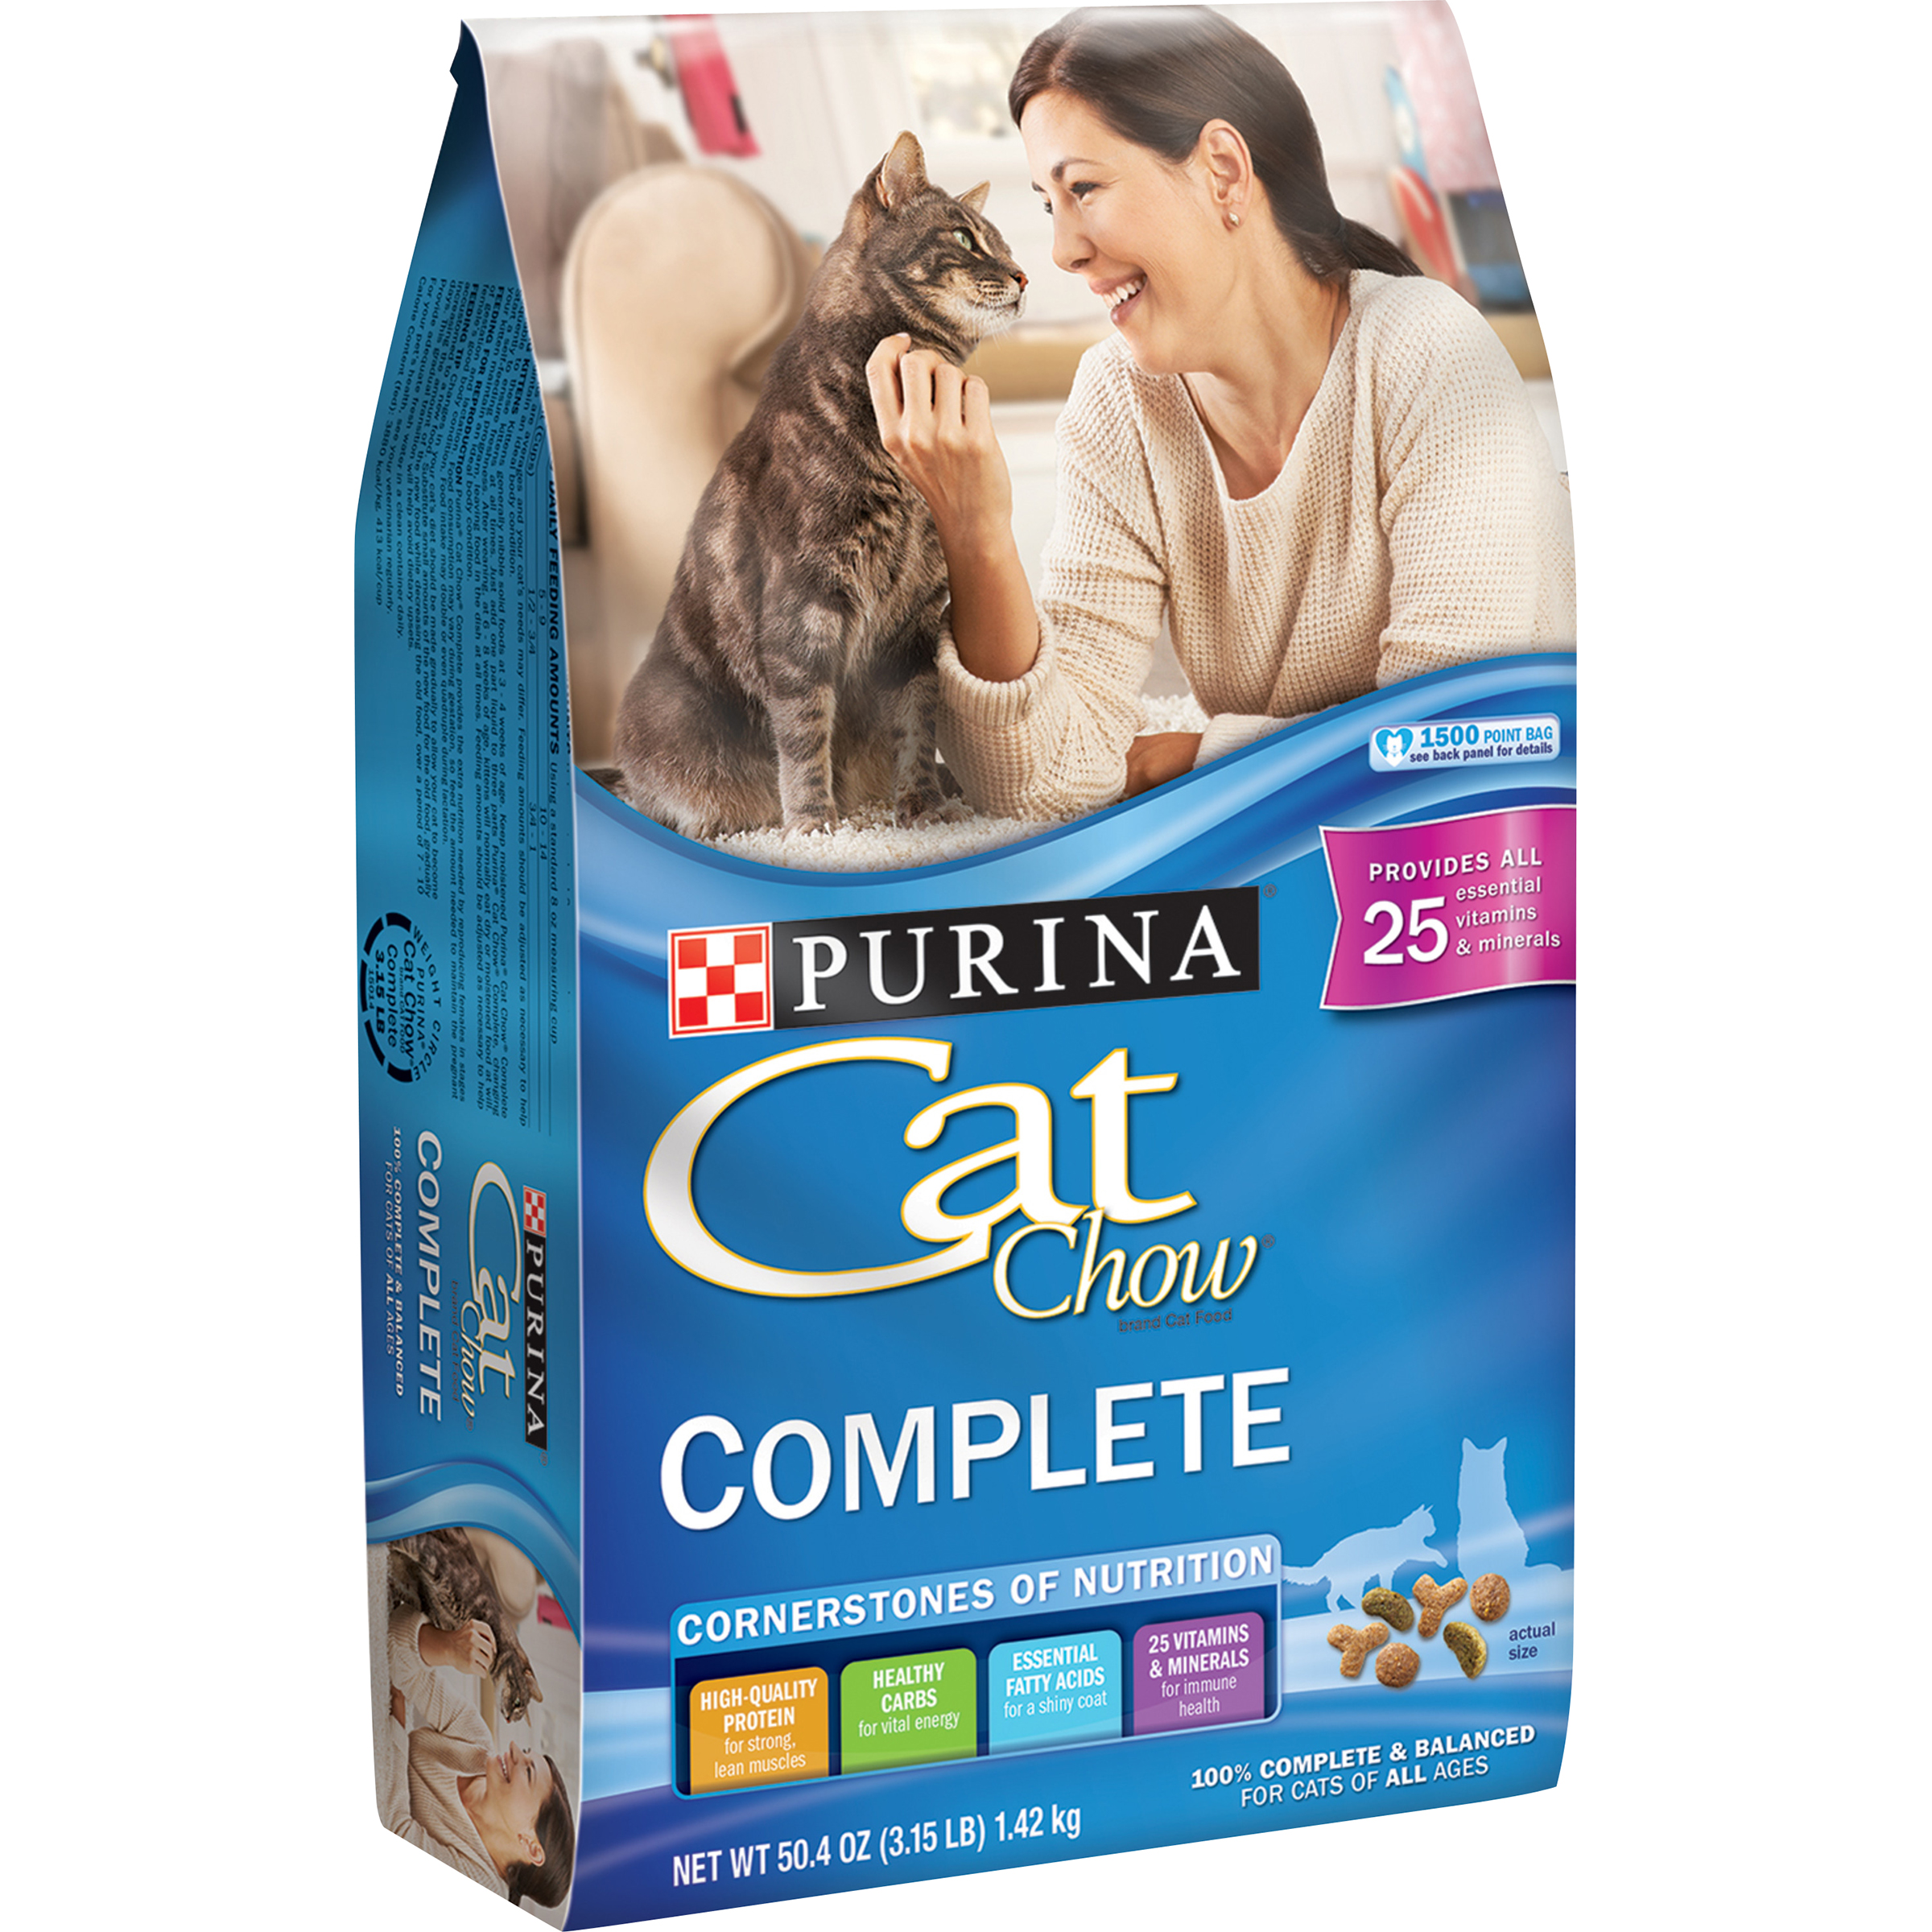 Purina Cat Chow Dry Cat Food; Complete - 3.15 lb. Bag